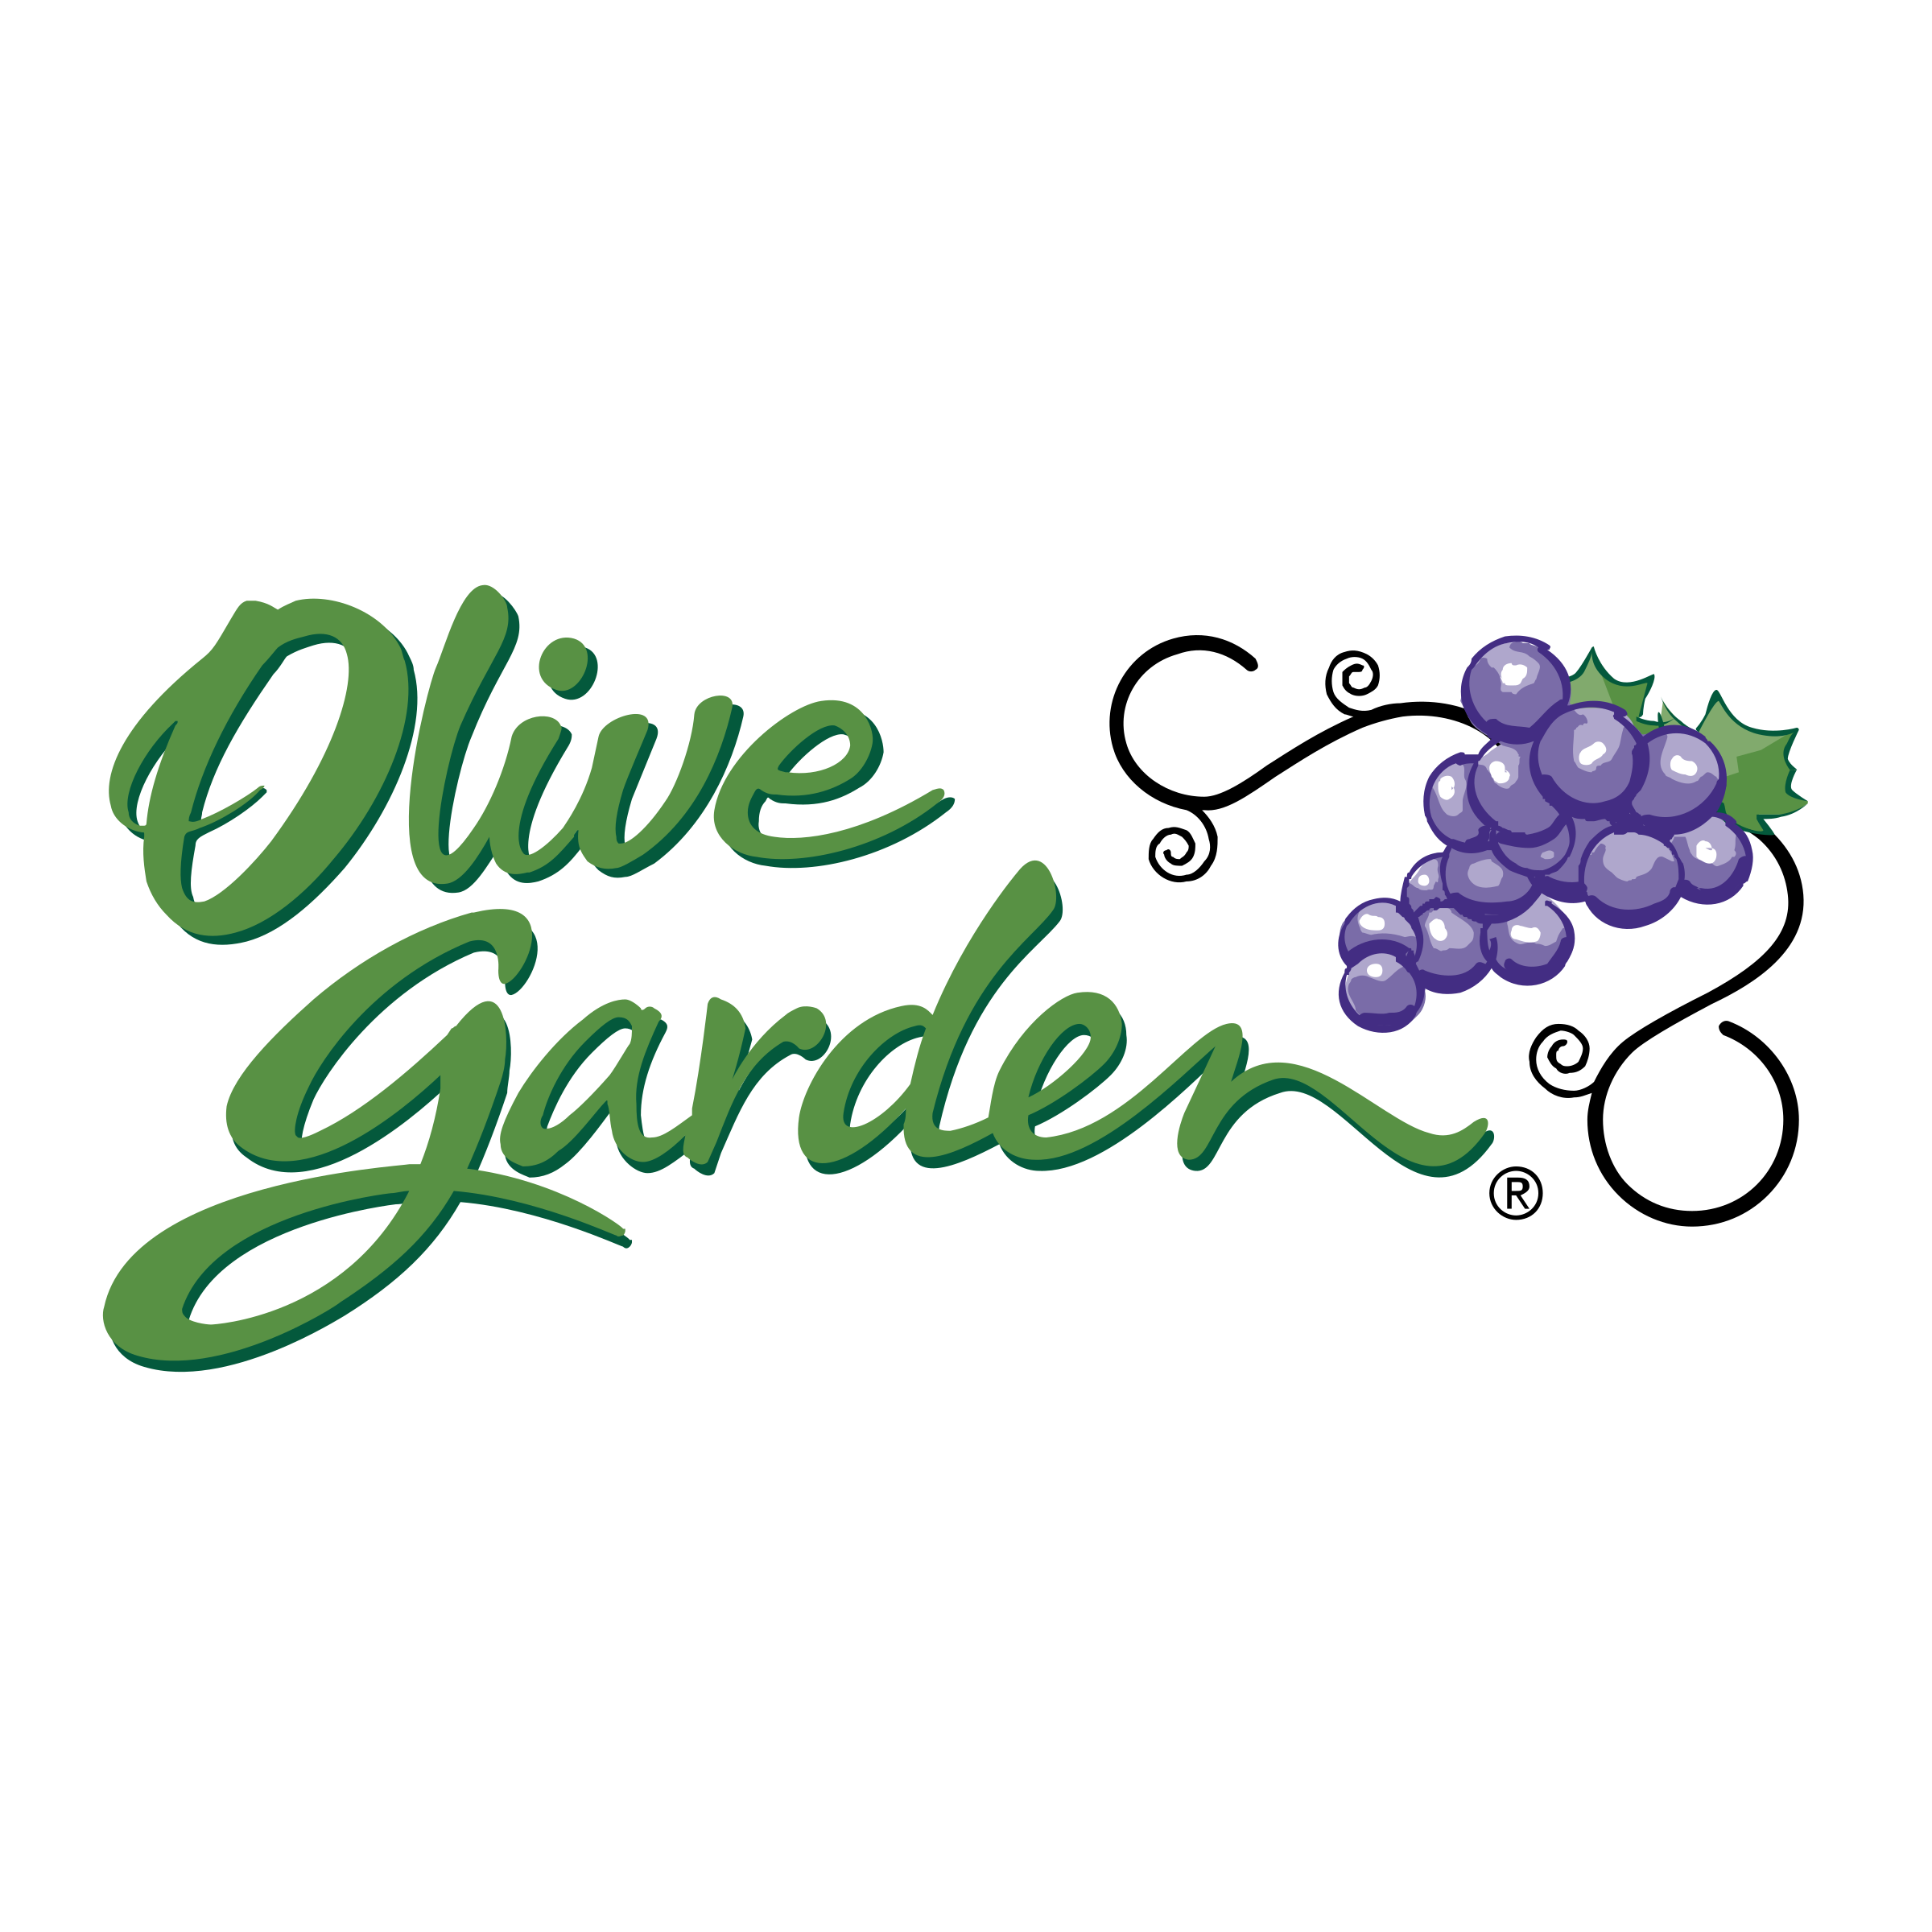 Olive garden logo png. Transparent svg vector freebie